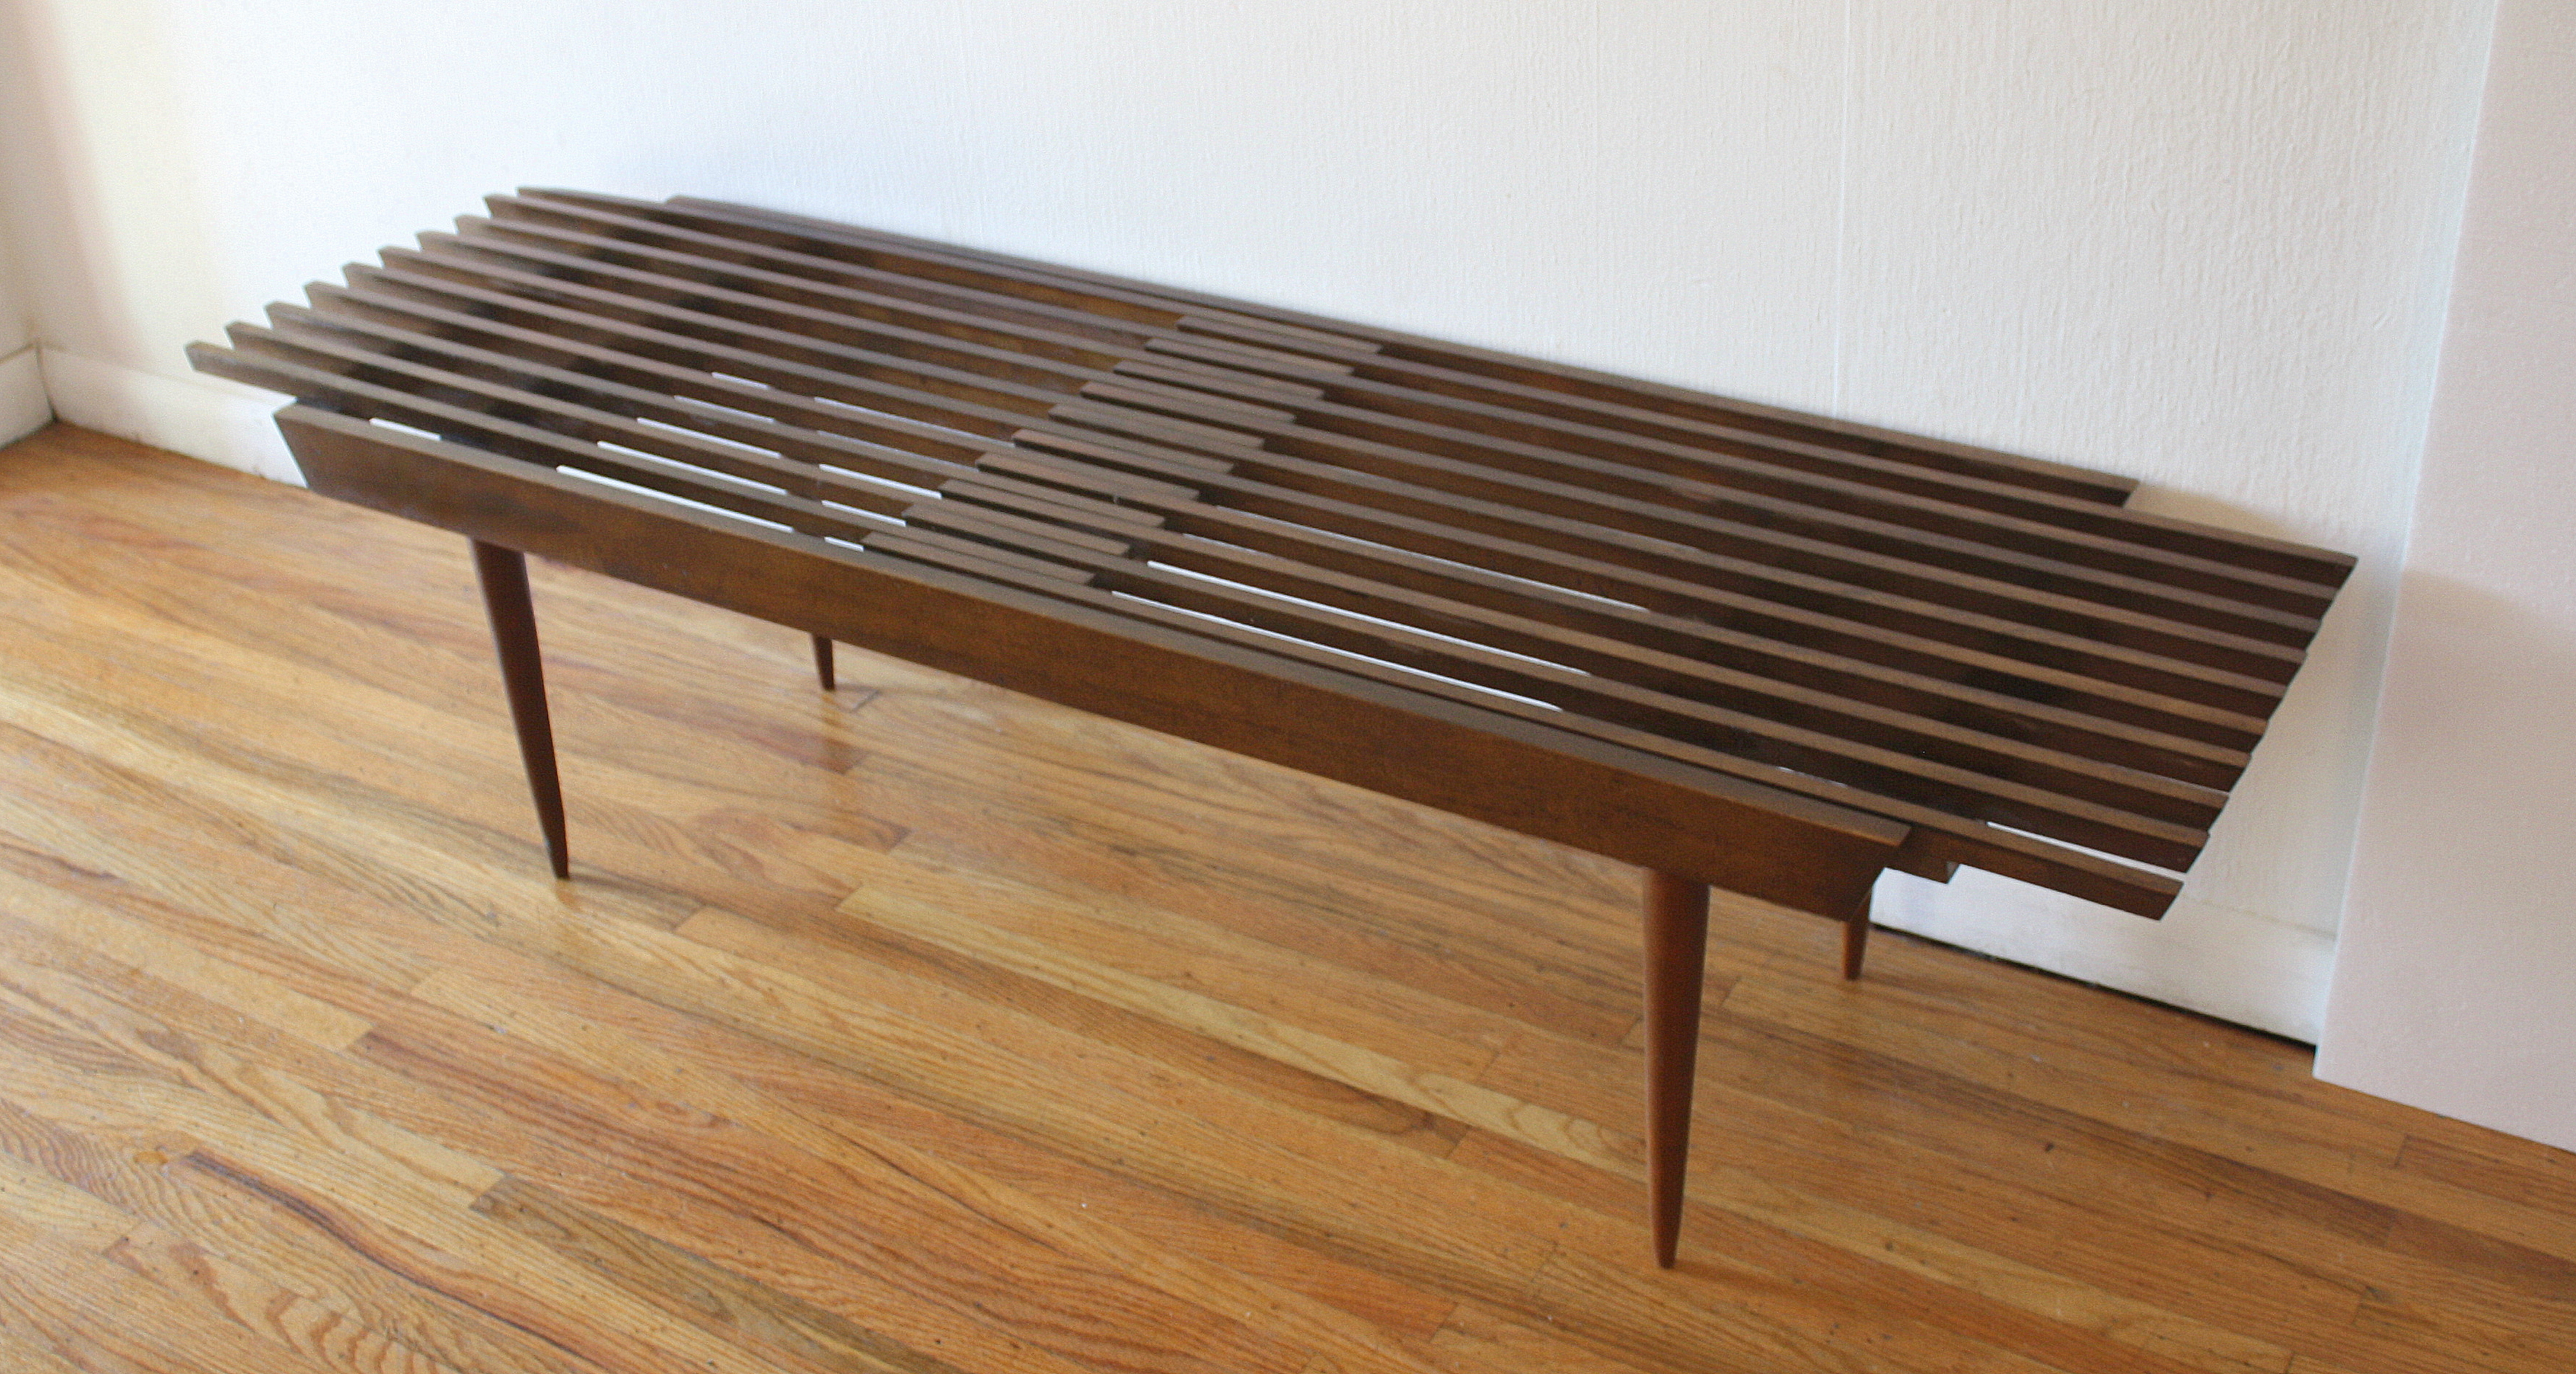 mcm extending slatted table bench 2